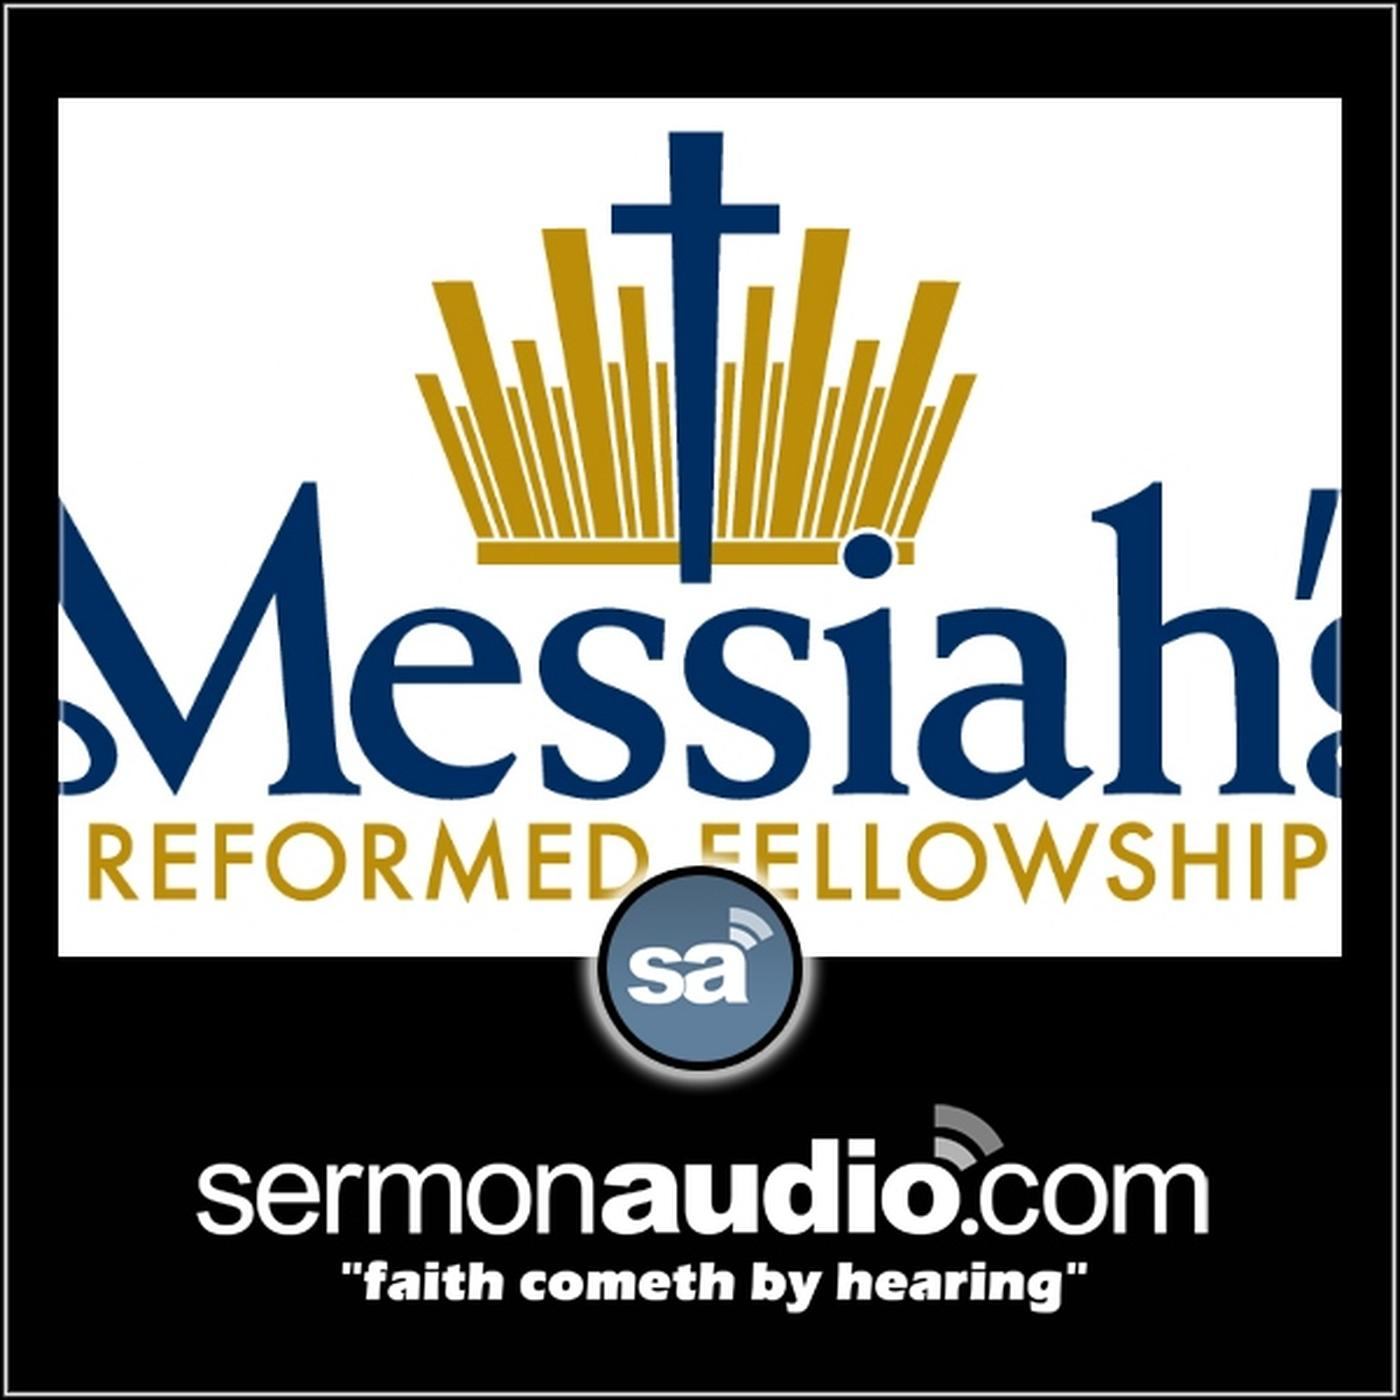 Messiah's Reformed Fellowship